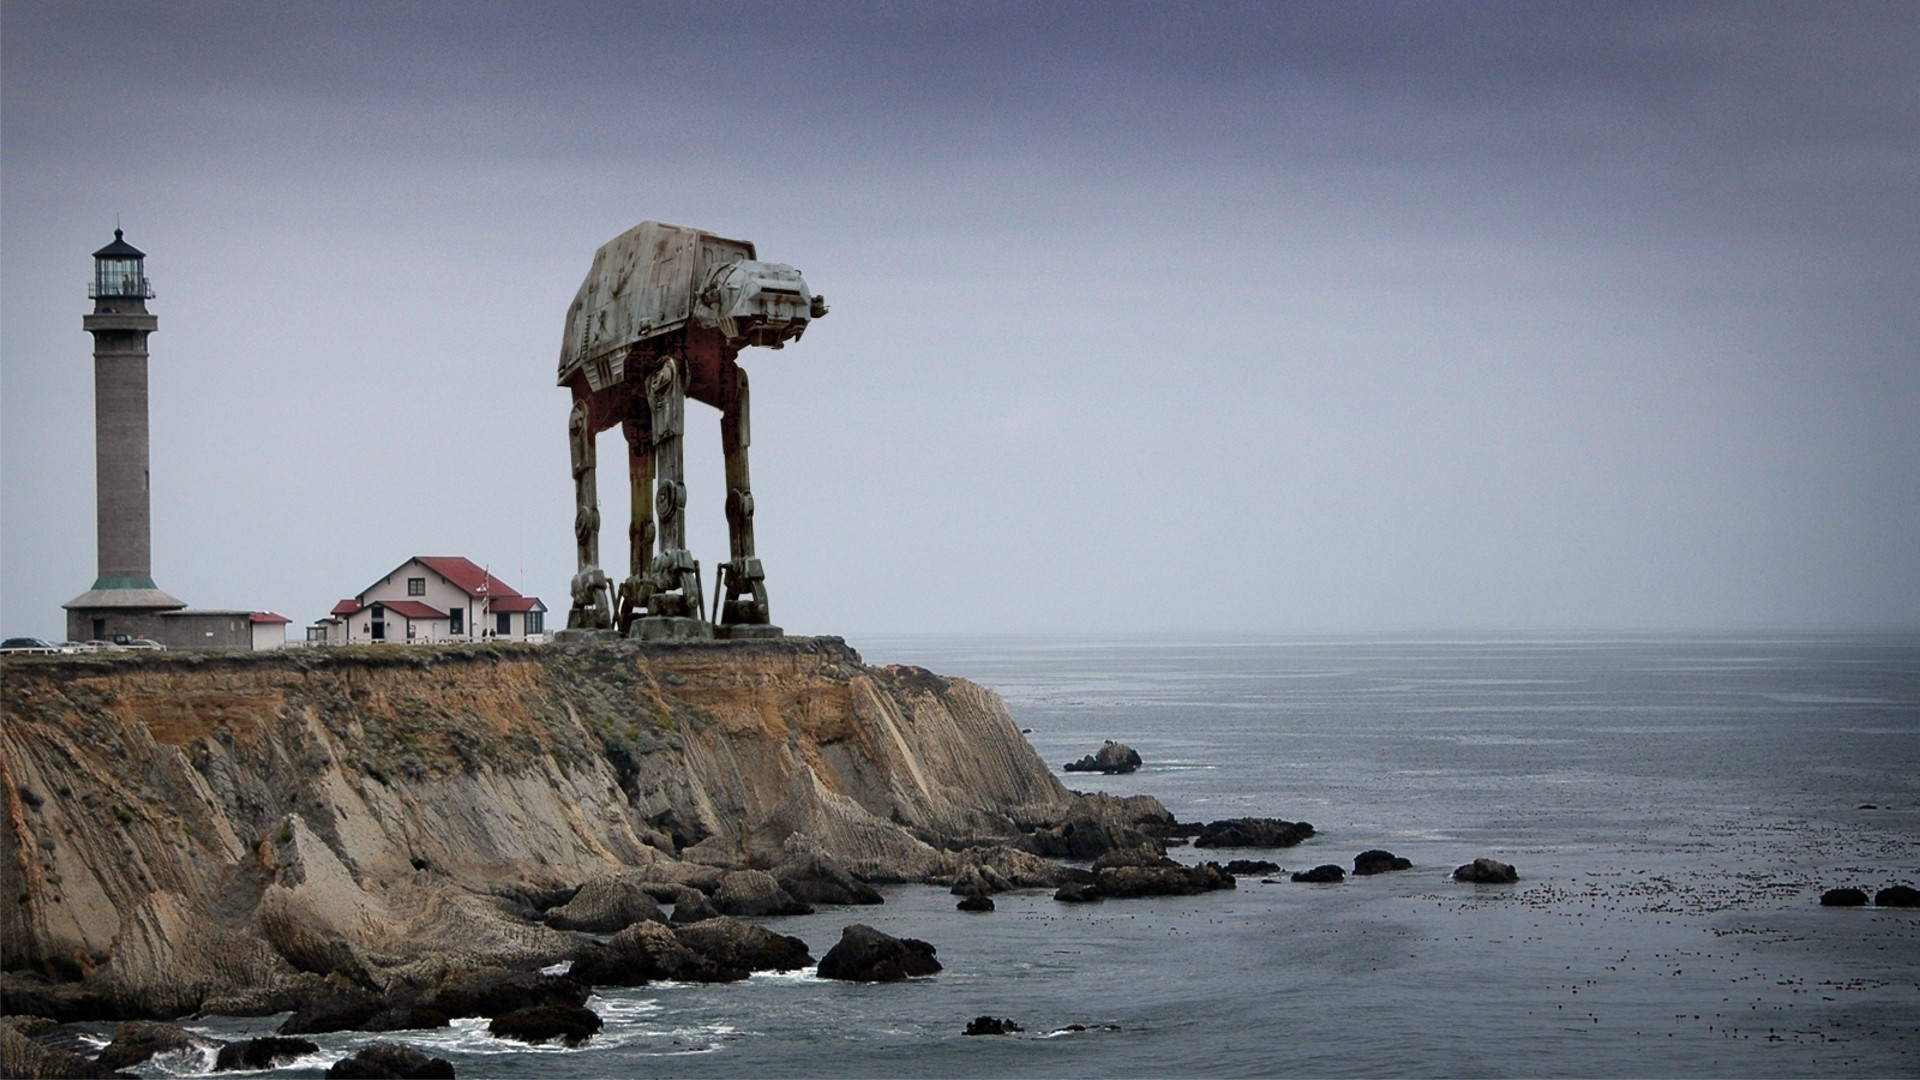 General 1920x1080 Star Wars AT-AT photo manipulation photomontage sea lighthouse Imperial Forces